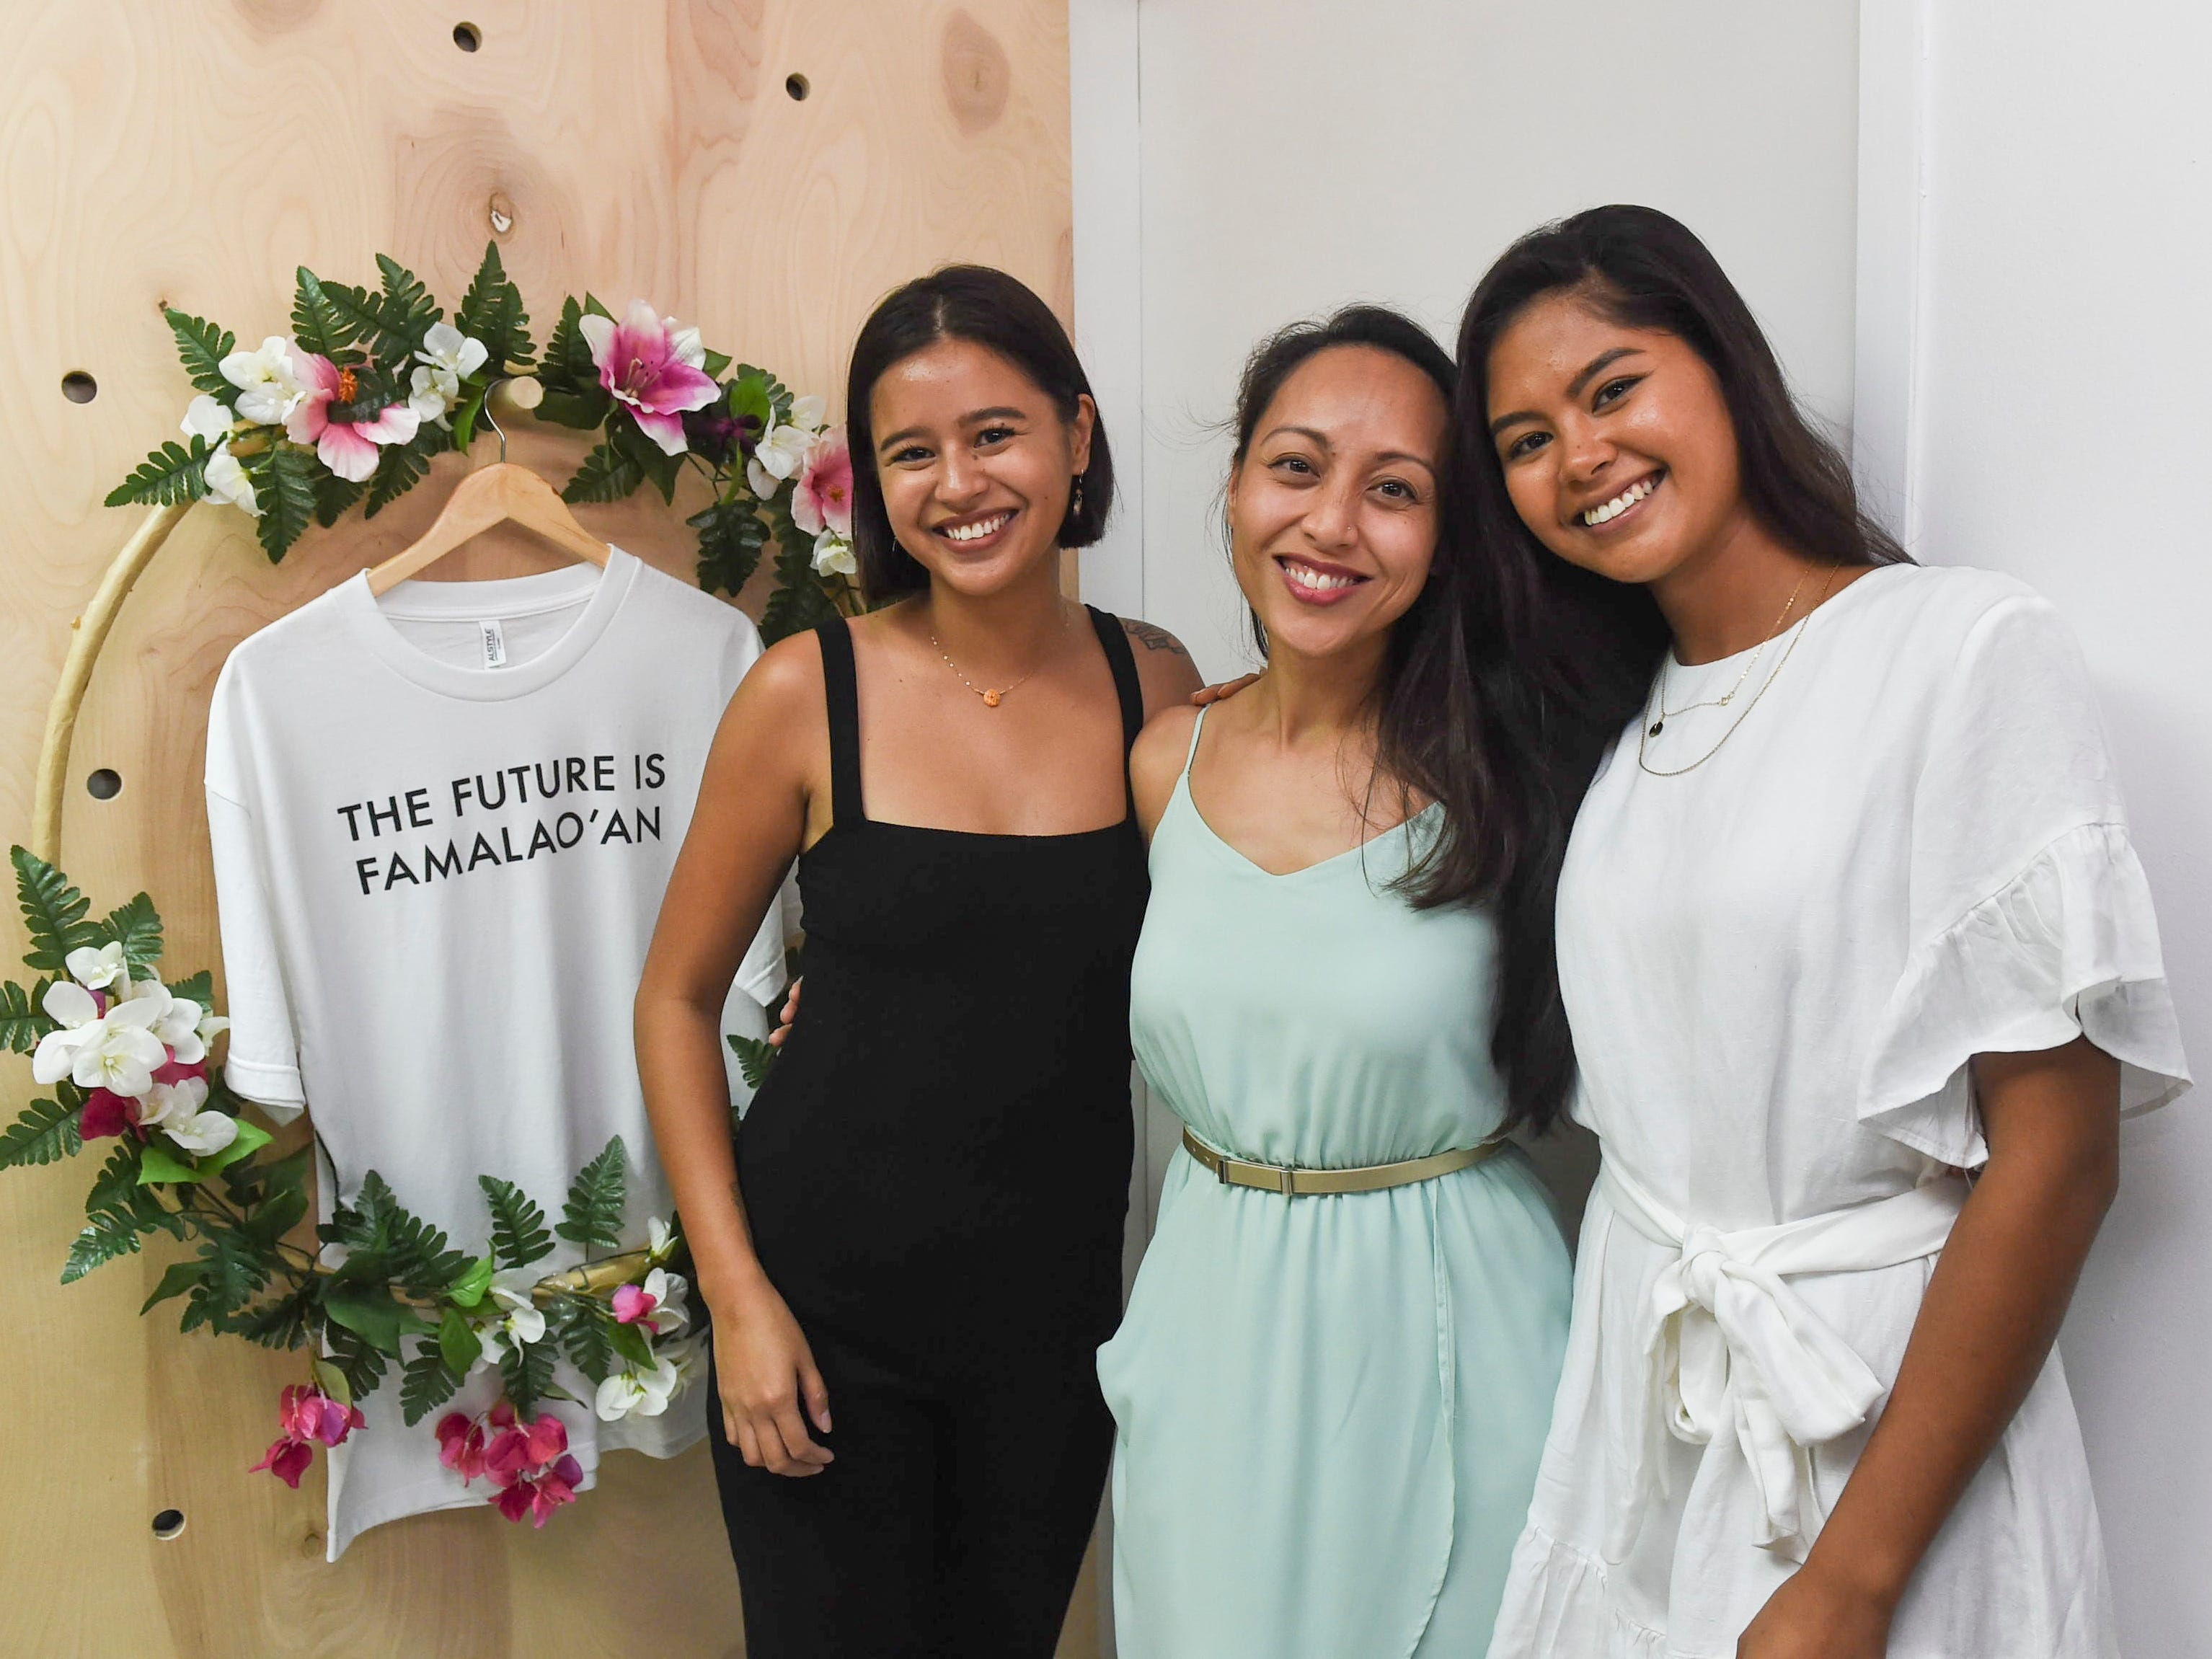 Sen. Regine Biscoe Lee, center, with Maga'håga Rising co-founders Chloe Babuta, left, and Franceska De Oro during their group launch party at Sundays Guam in Tumon, Jan. 13, 2018.